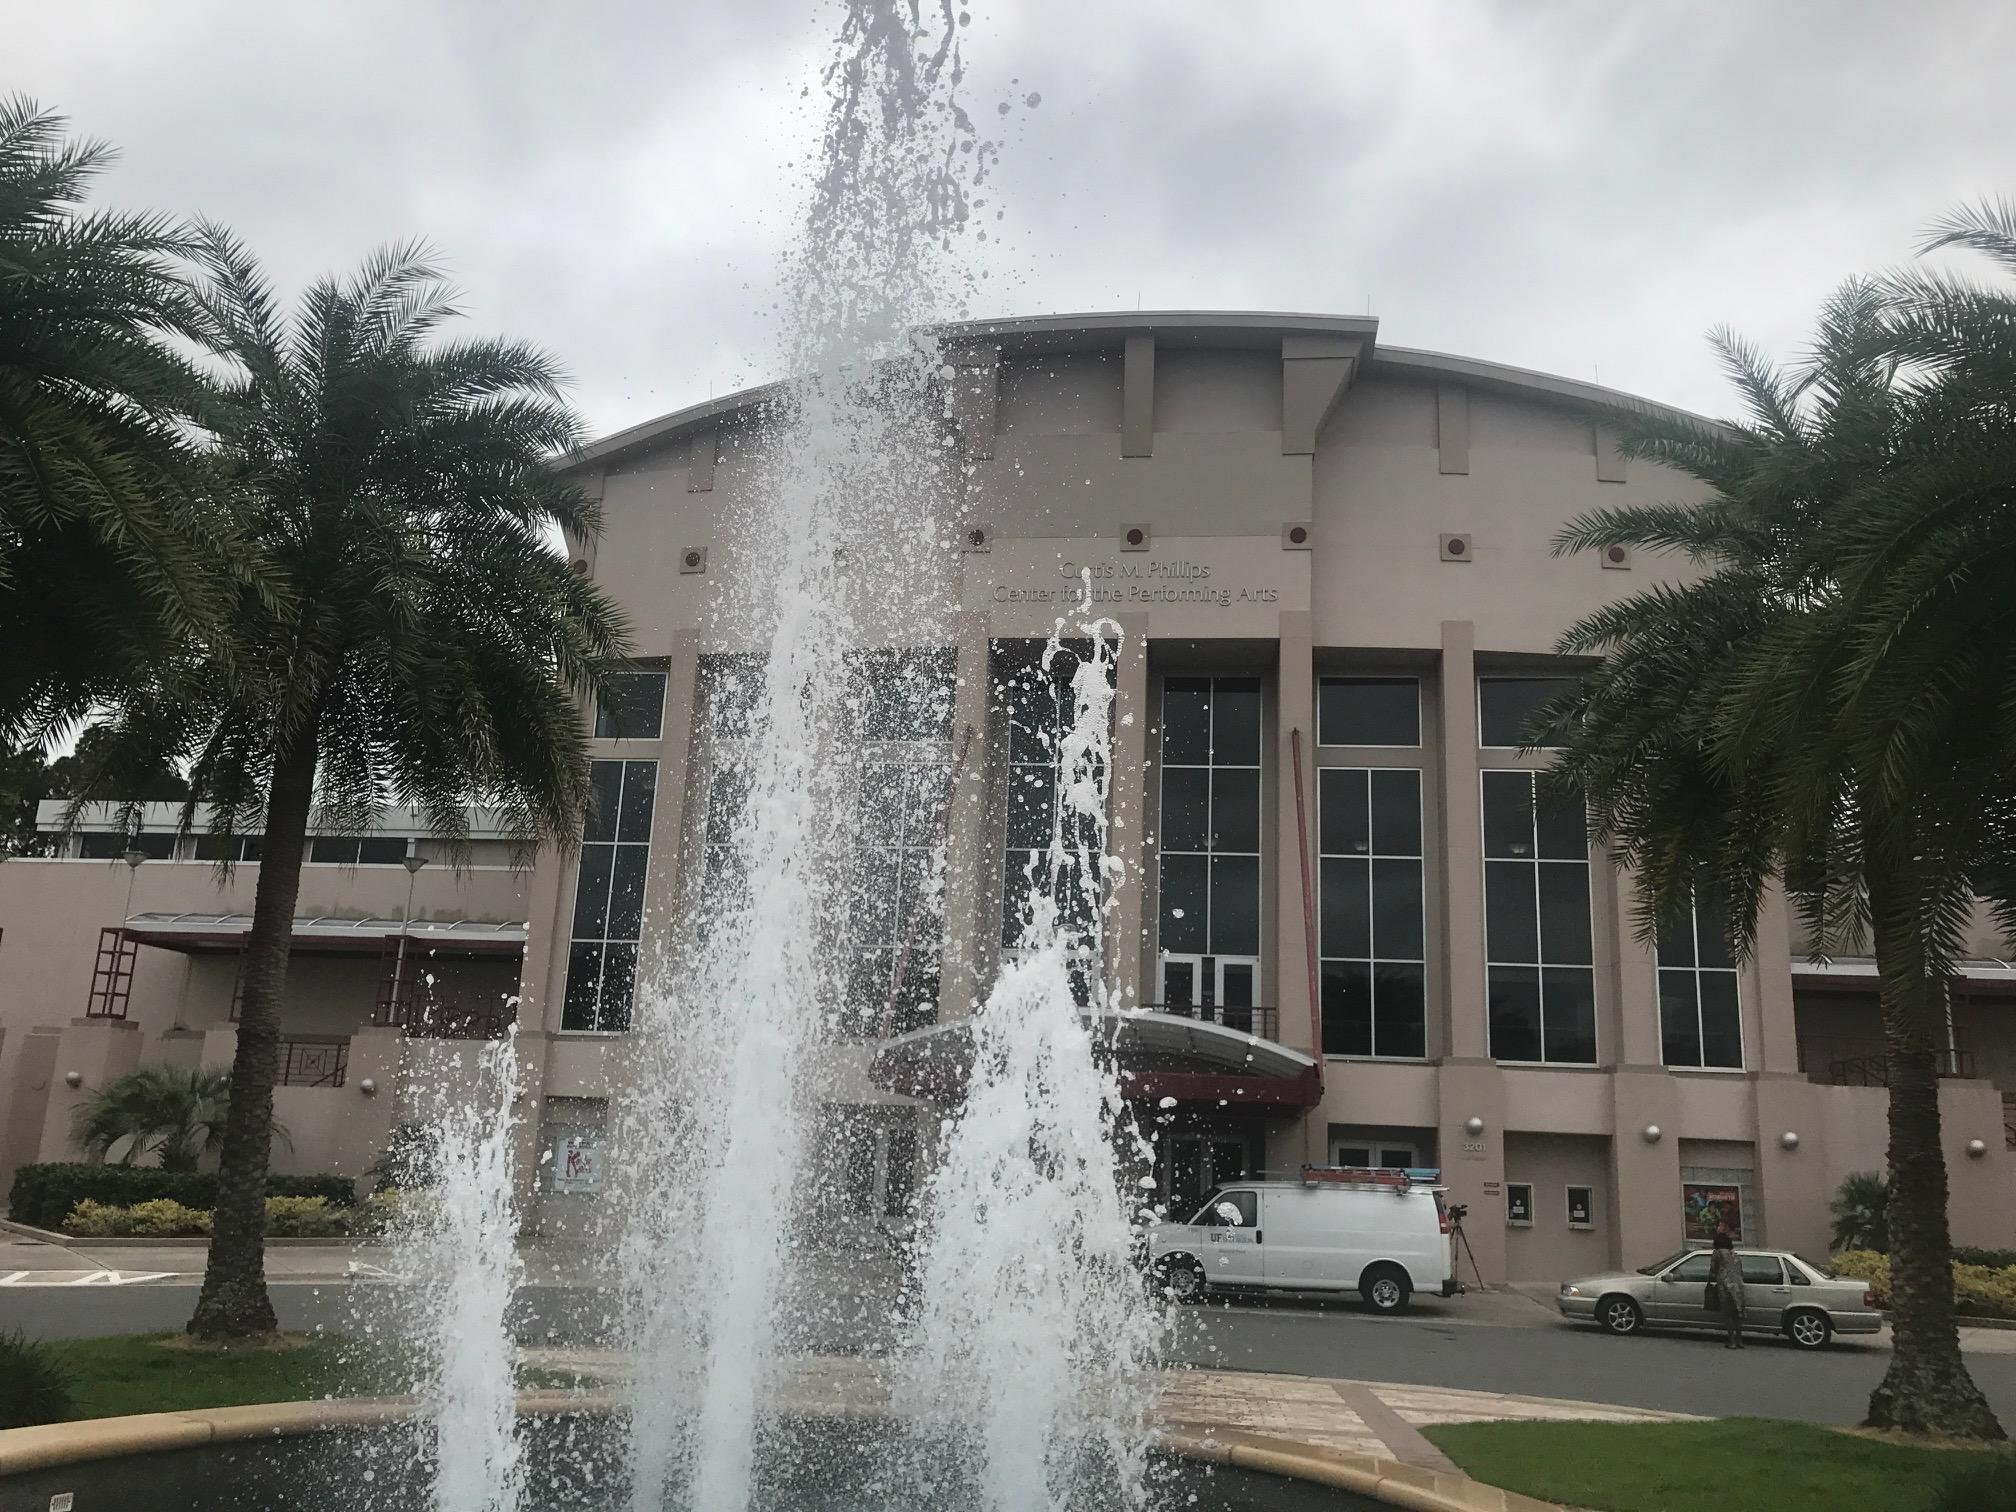 The{ } Phillips Center Tuesday. (WGFL)